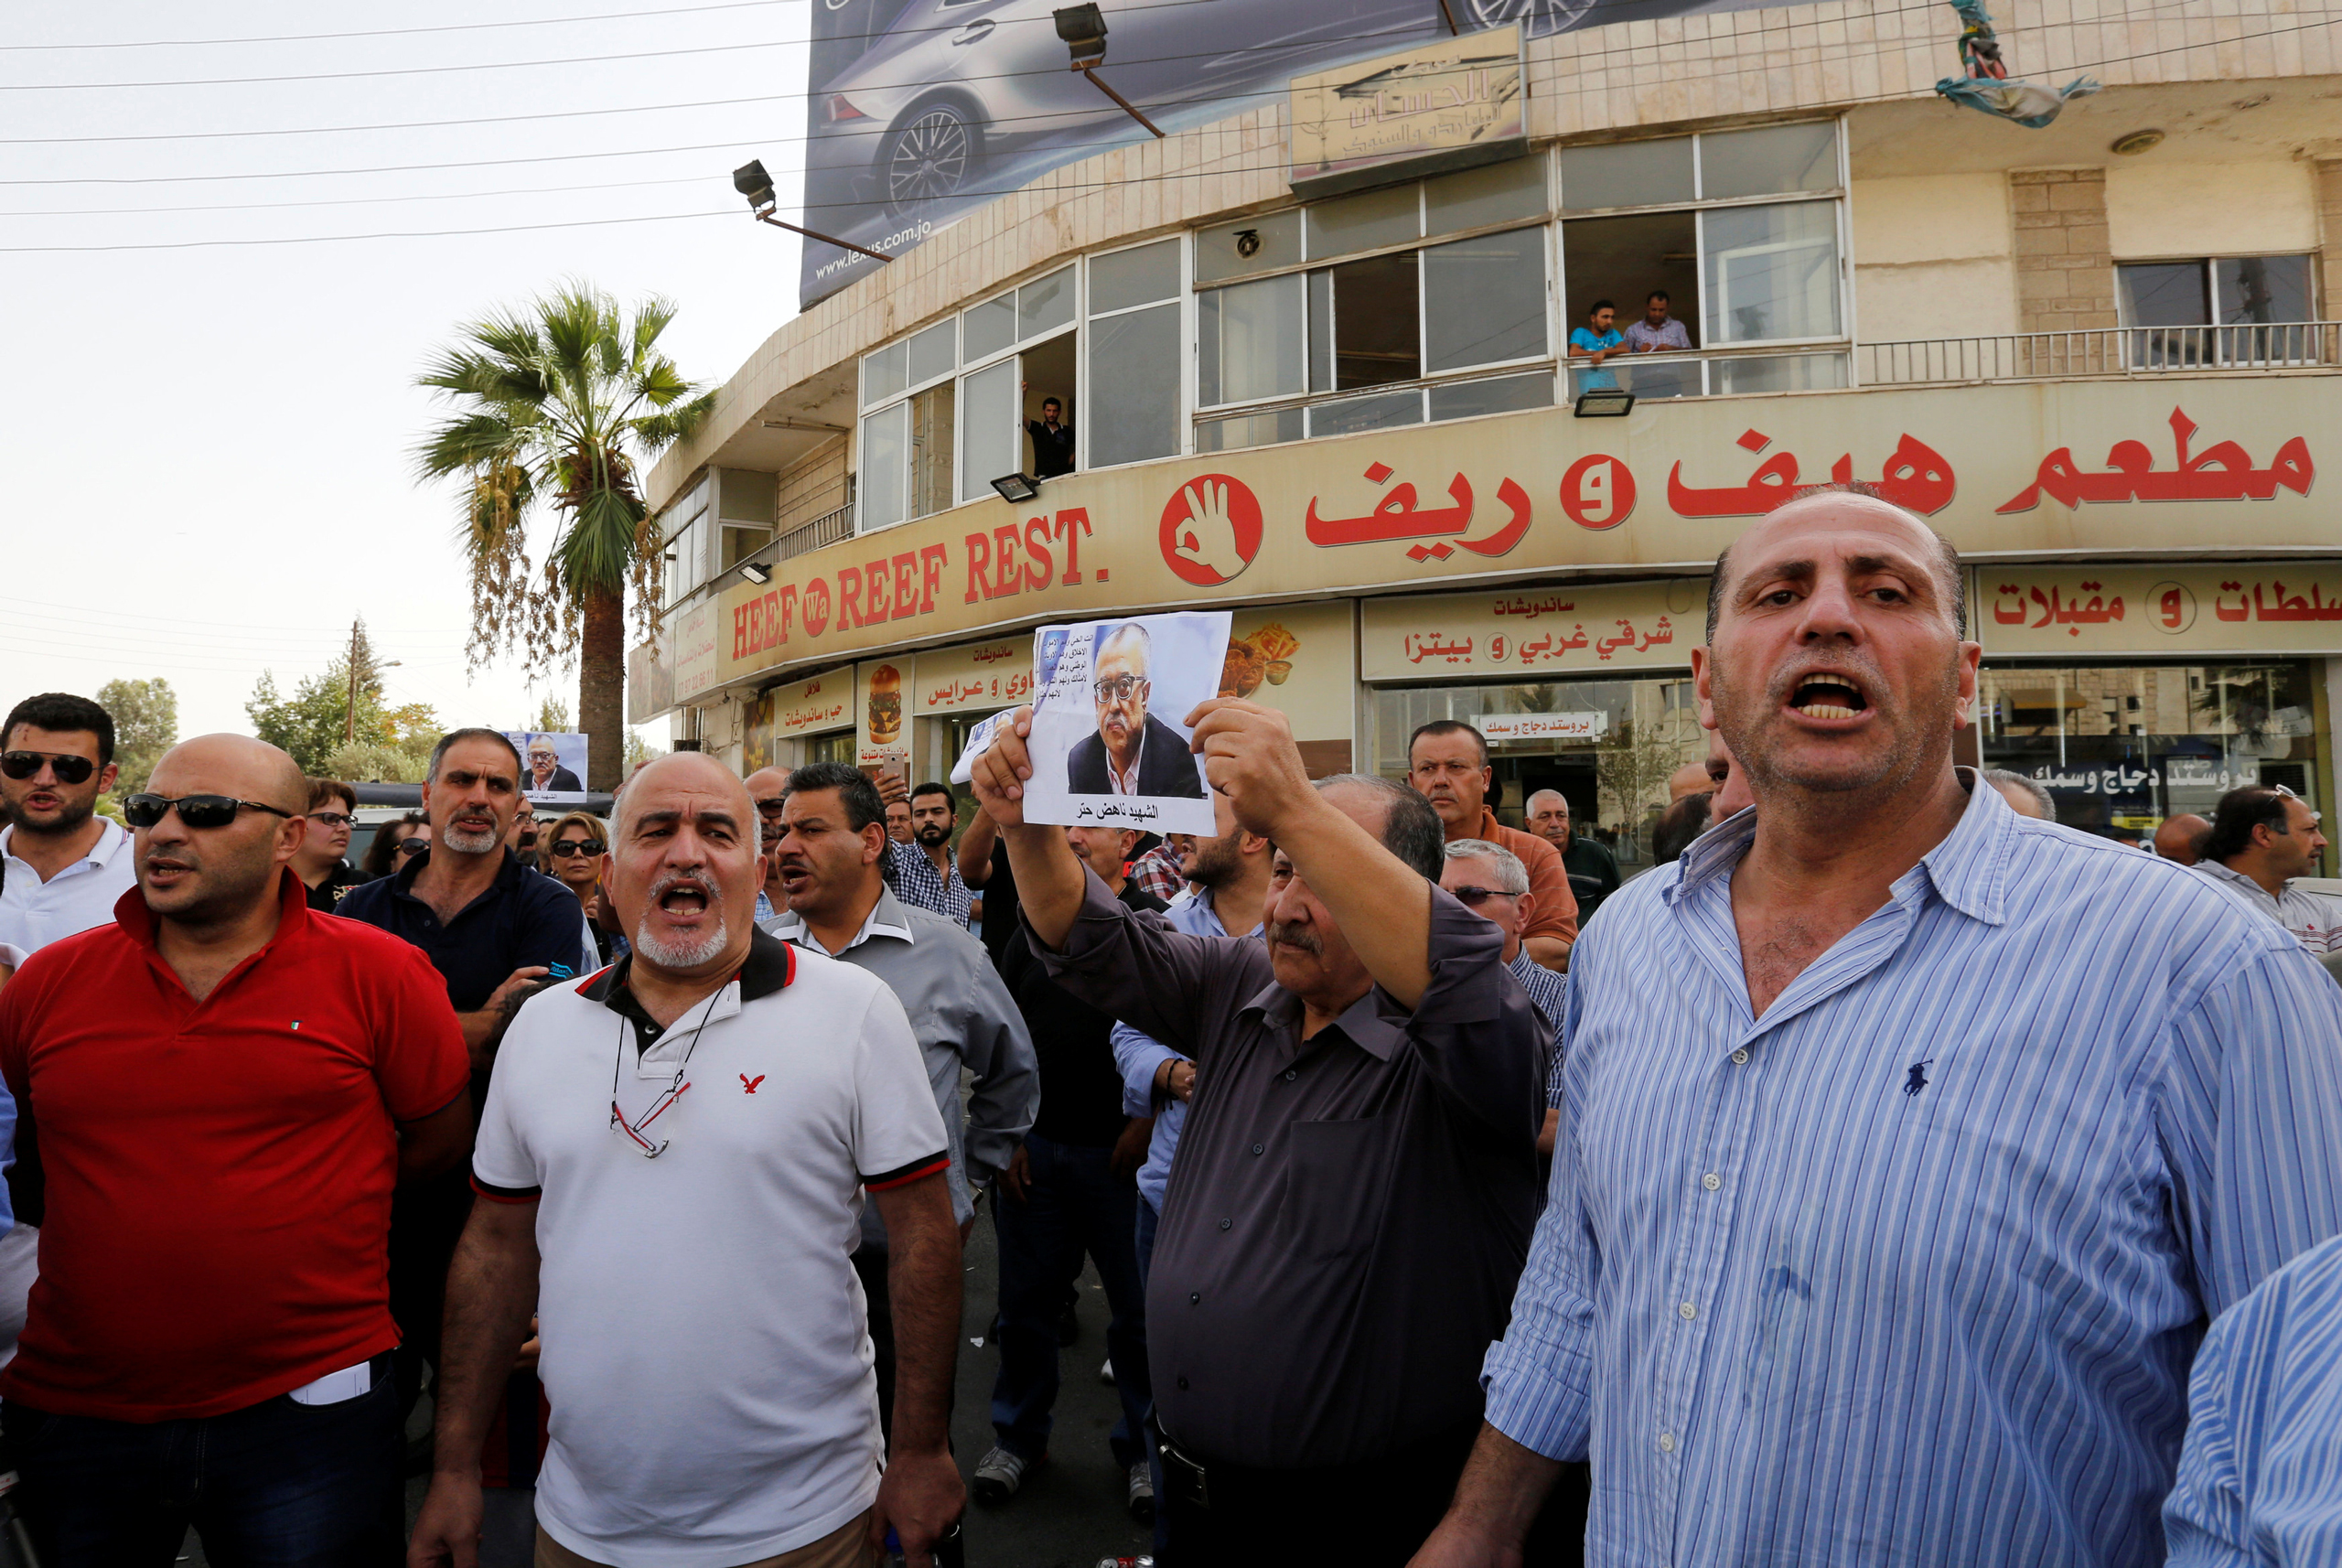 Relatives and friends of the Jordanian writer Nahed Hattar hold pictures of him and chant slogans against the government during a sit-in in the town of Al-Fuheis, Jordan, on Sept. 25, 2016.